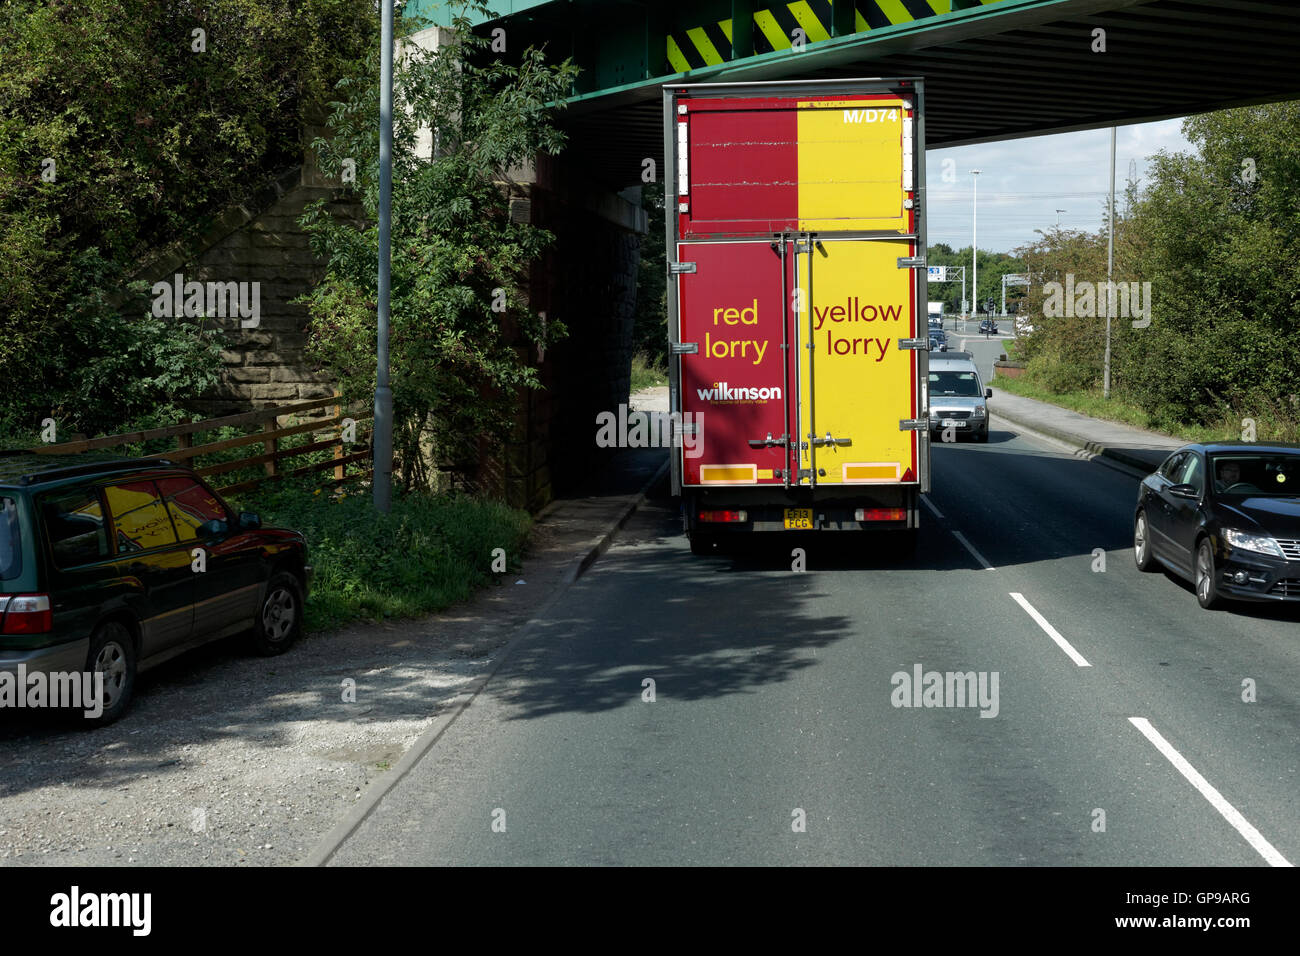 red,yellow,lorry,red lorry yellow lorry,driving under low bridge,pontefract,yorkshire,england,united kingdom - Stock Image